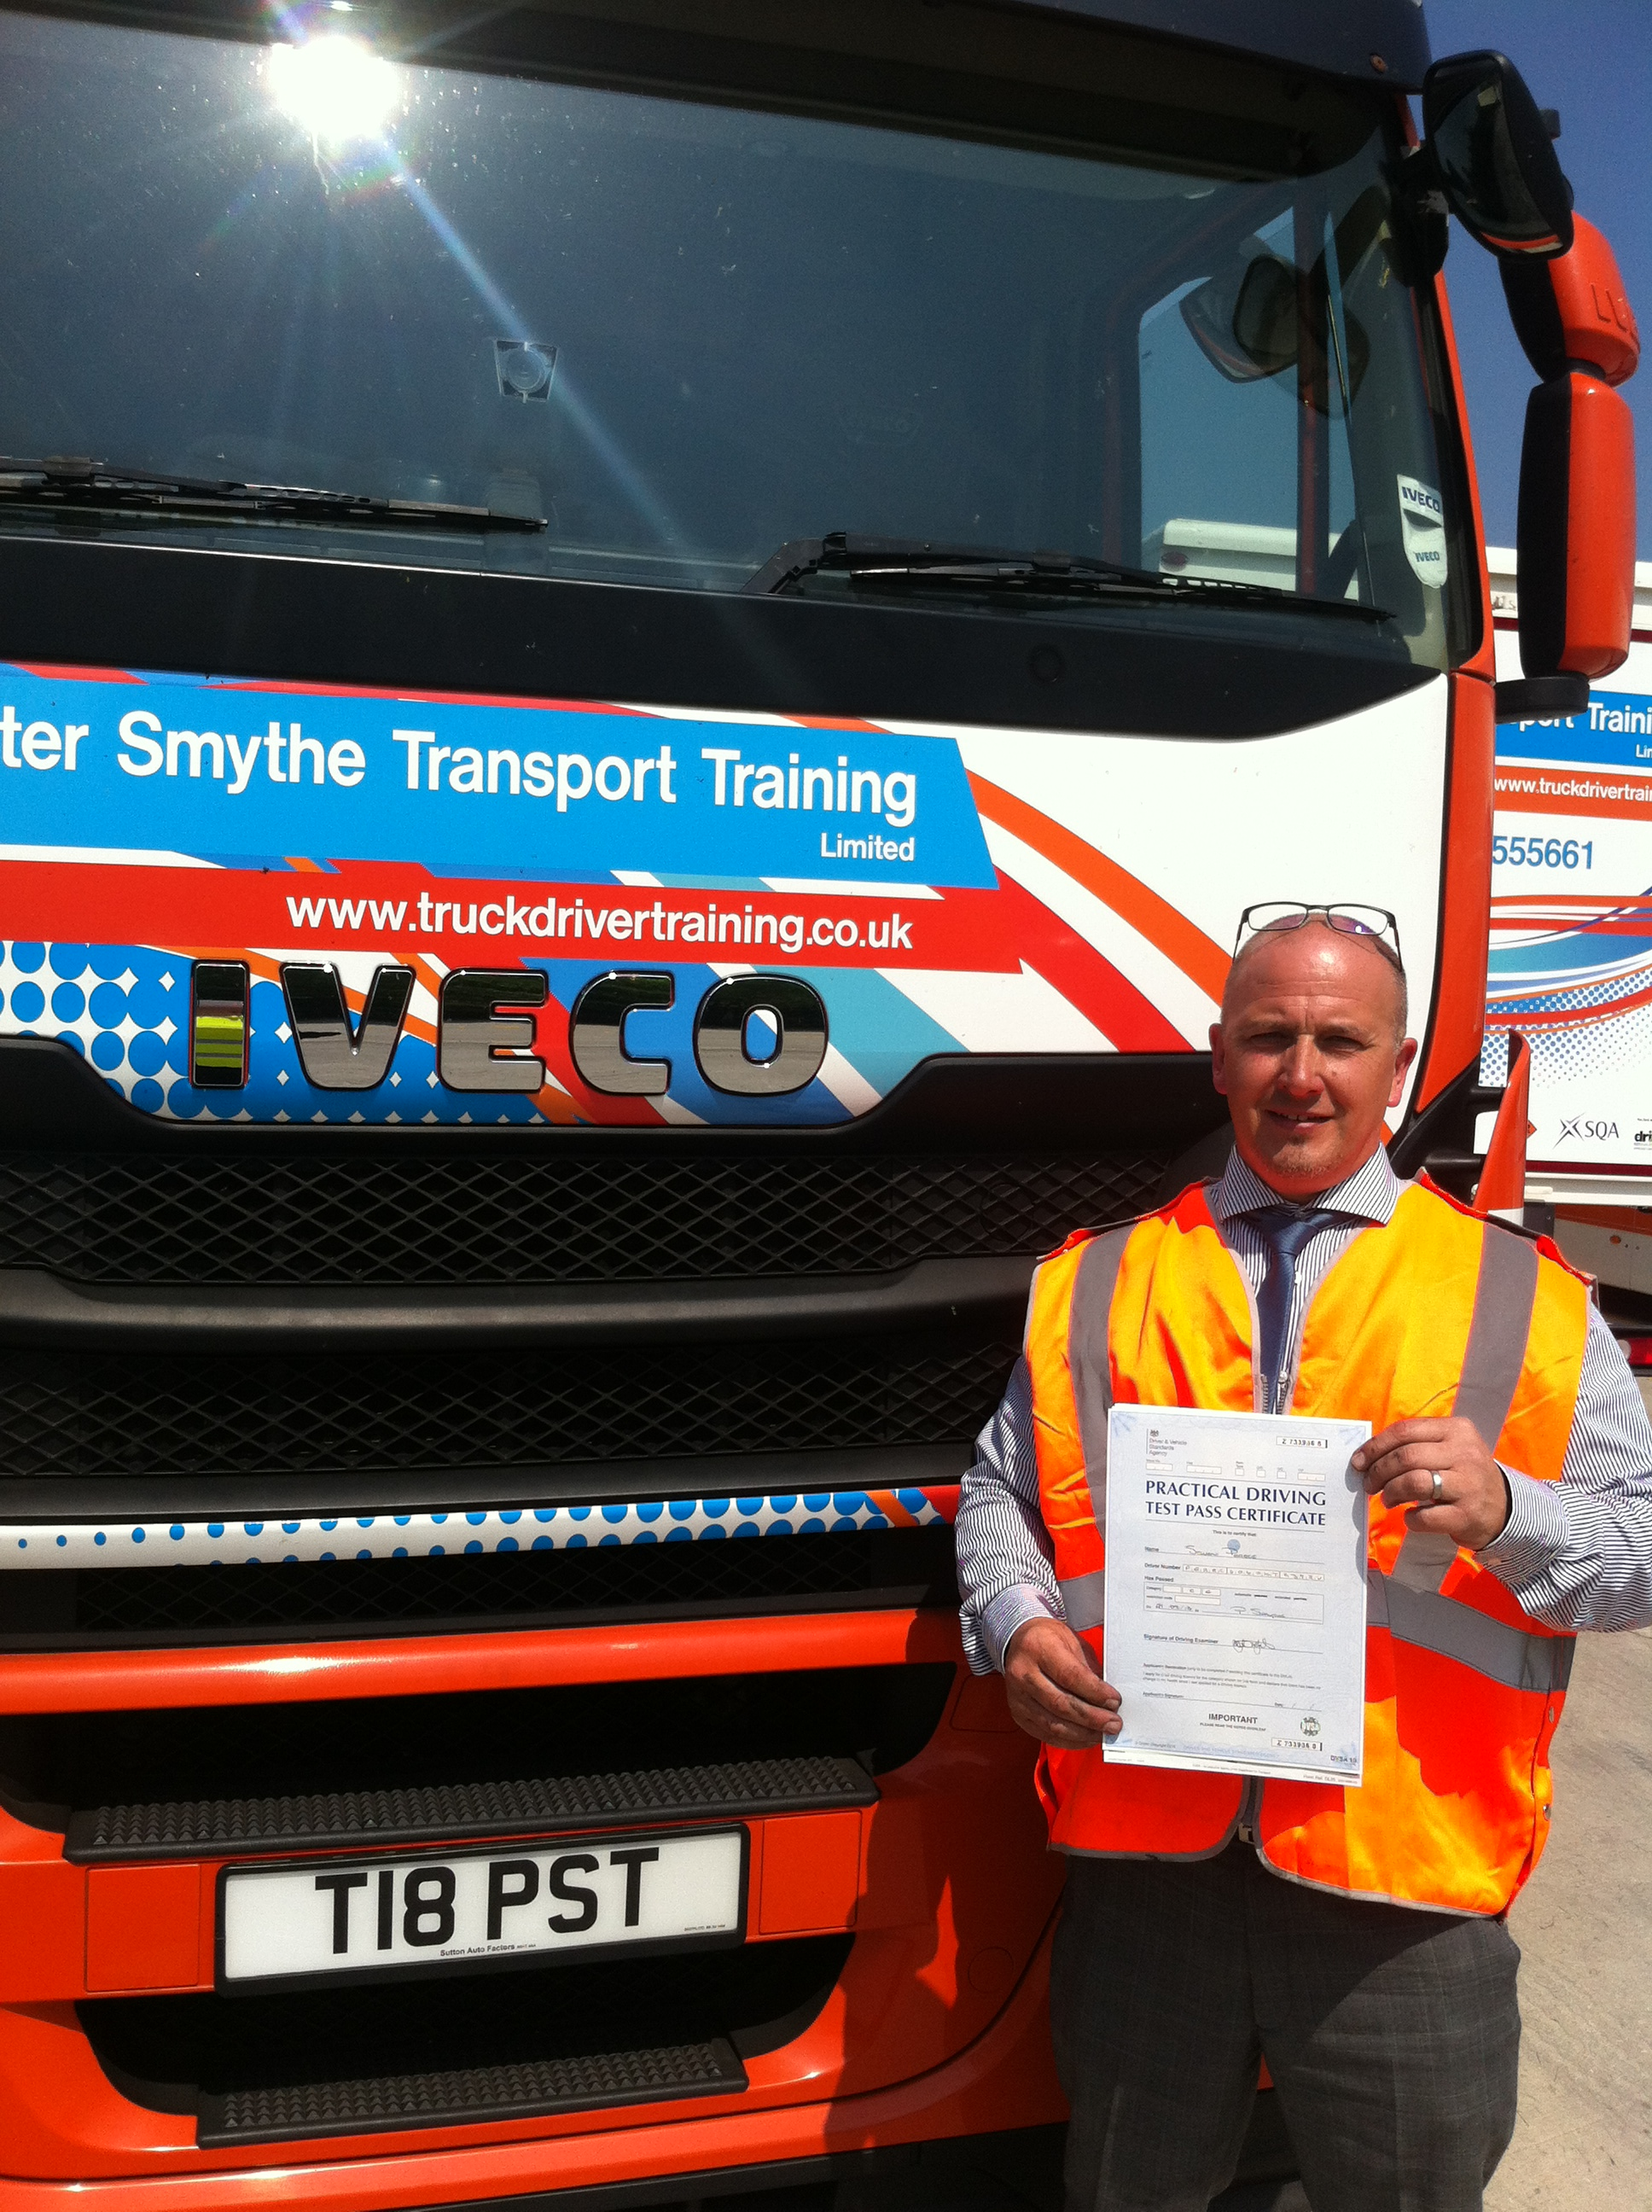 Steve Pearce from Leicester PASSED HGV CLASS 1#ipassedwithpstt